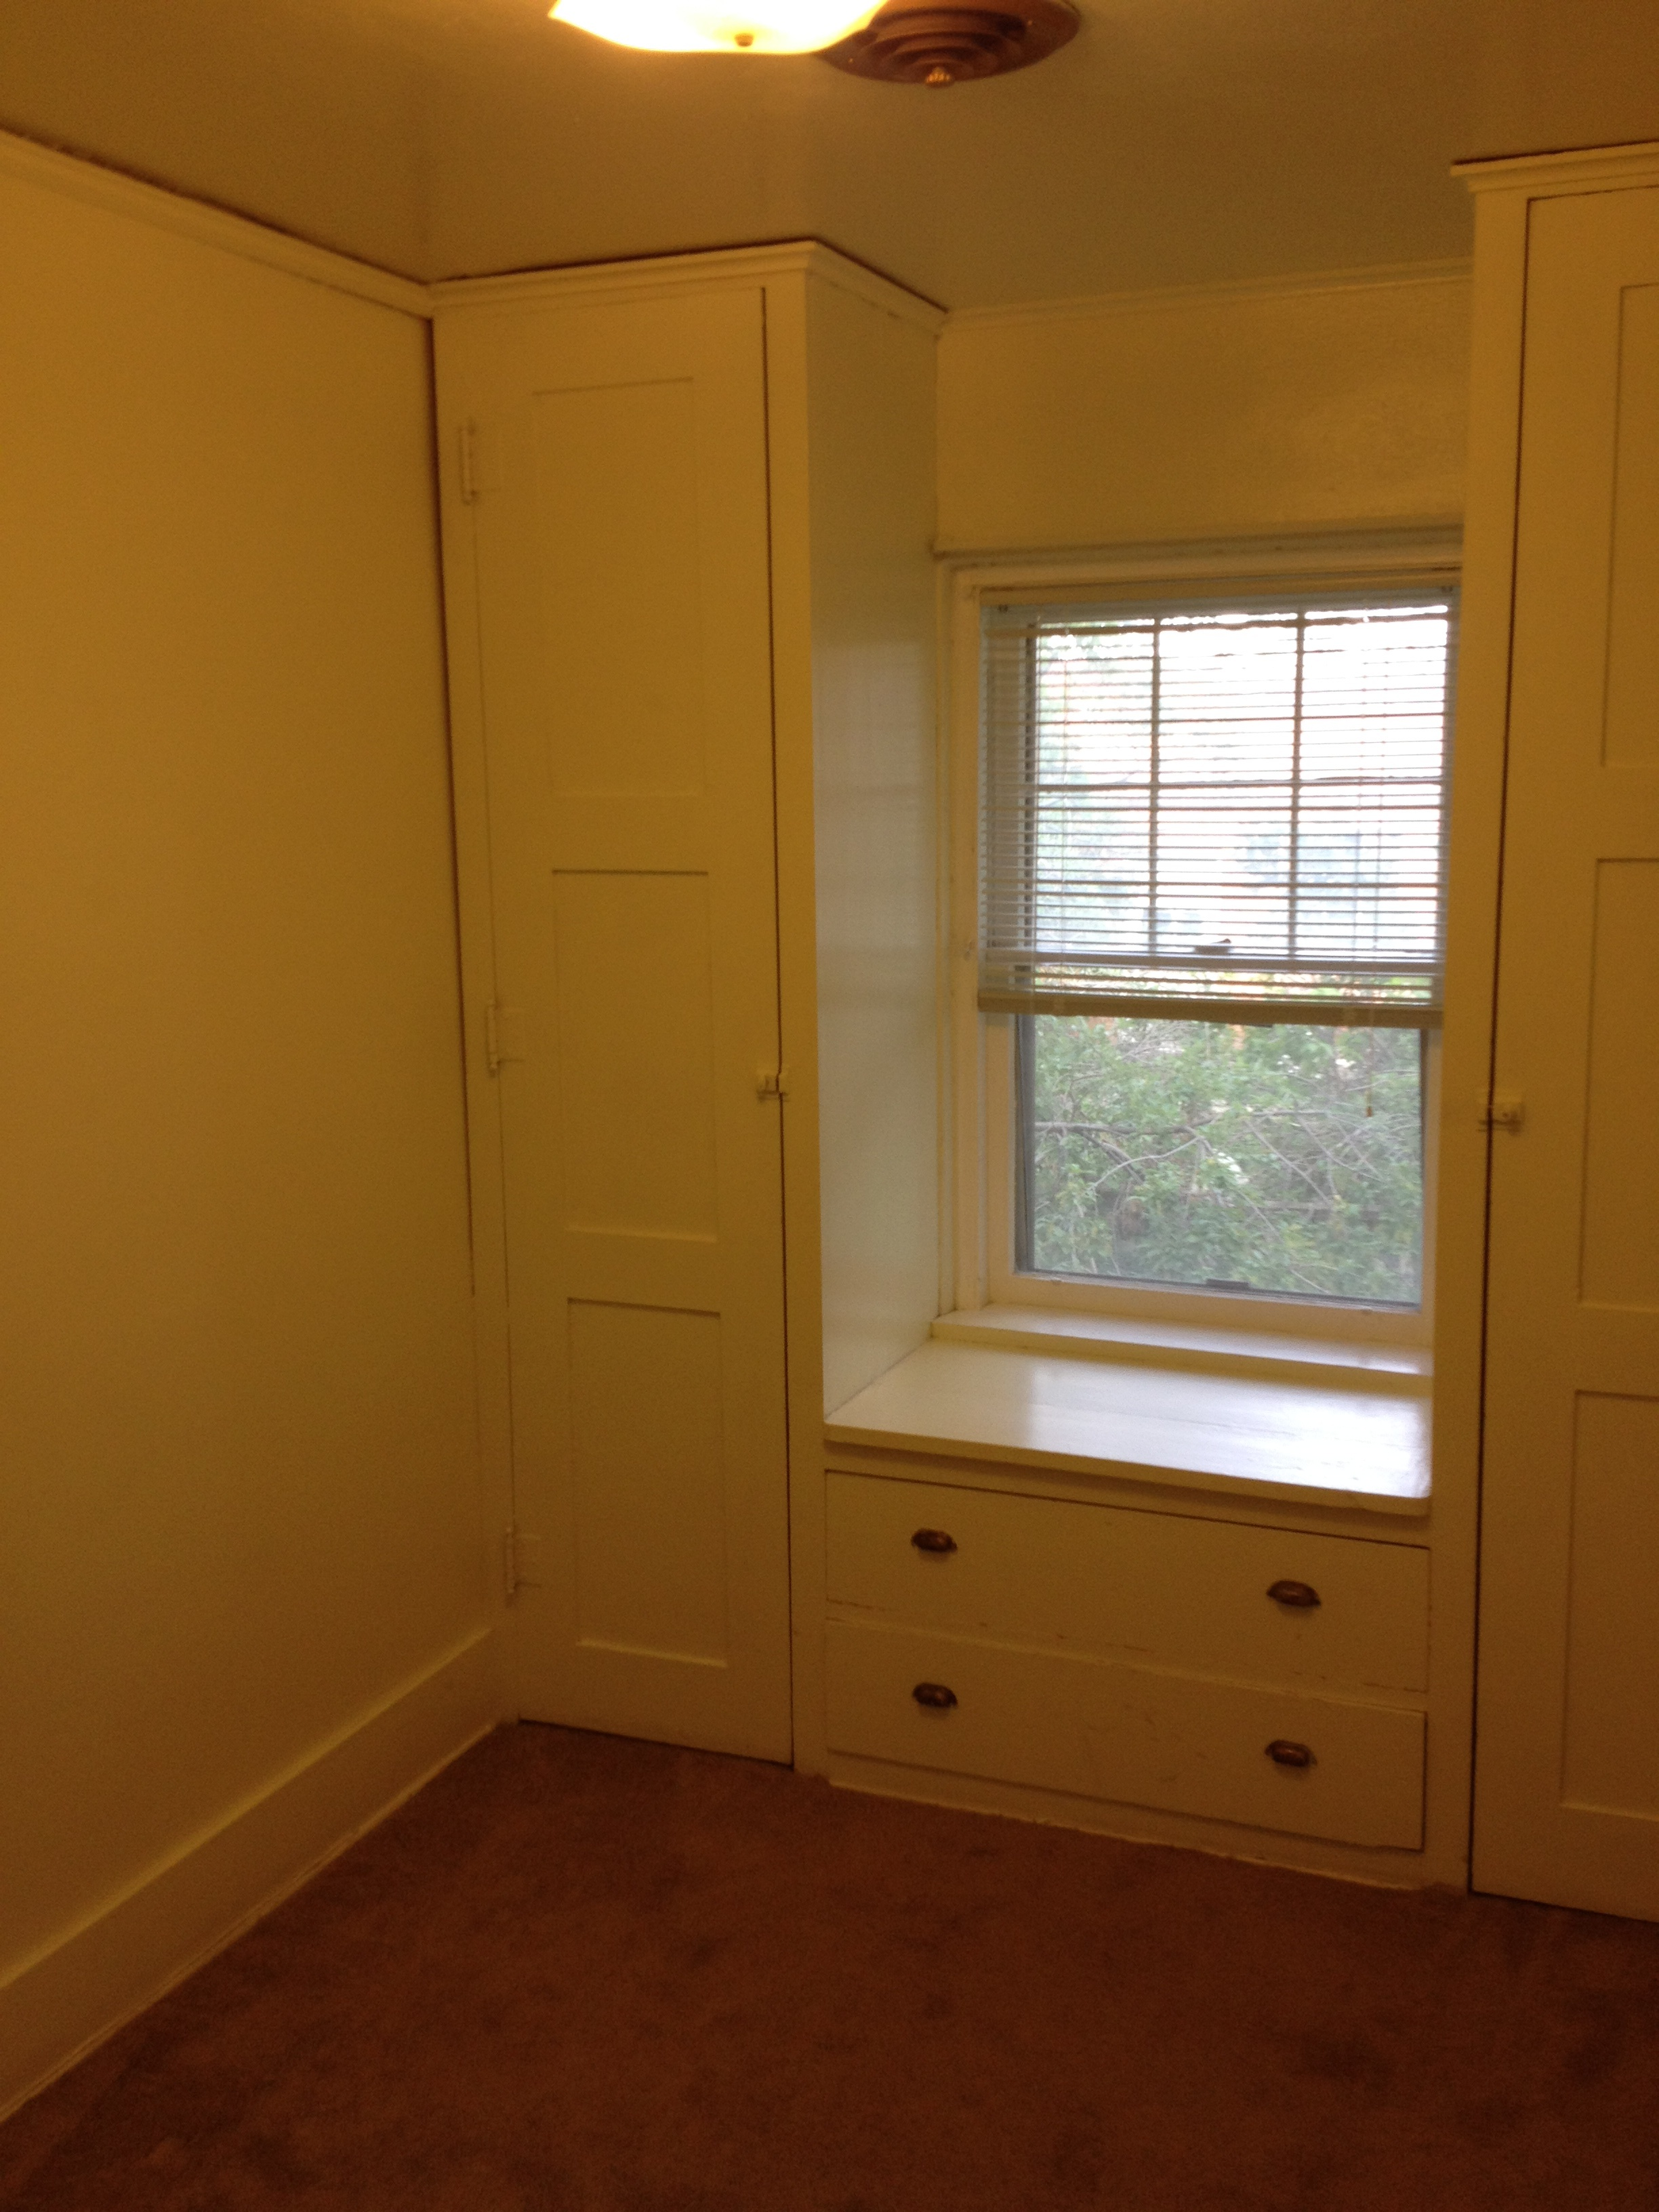 1 Bedroom Bonus Room 1 Bath Apartment Available For Rent Casper Rental Central